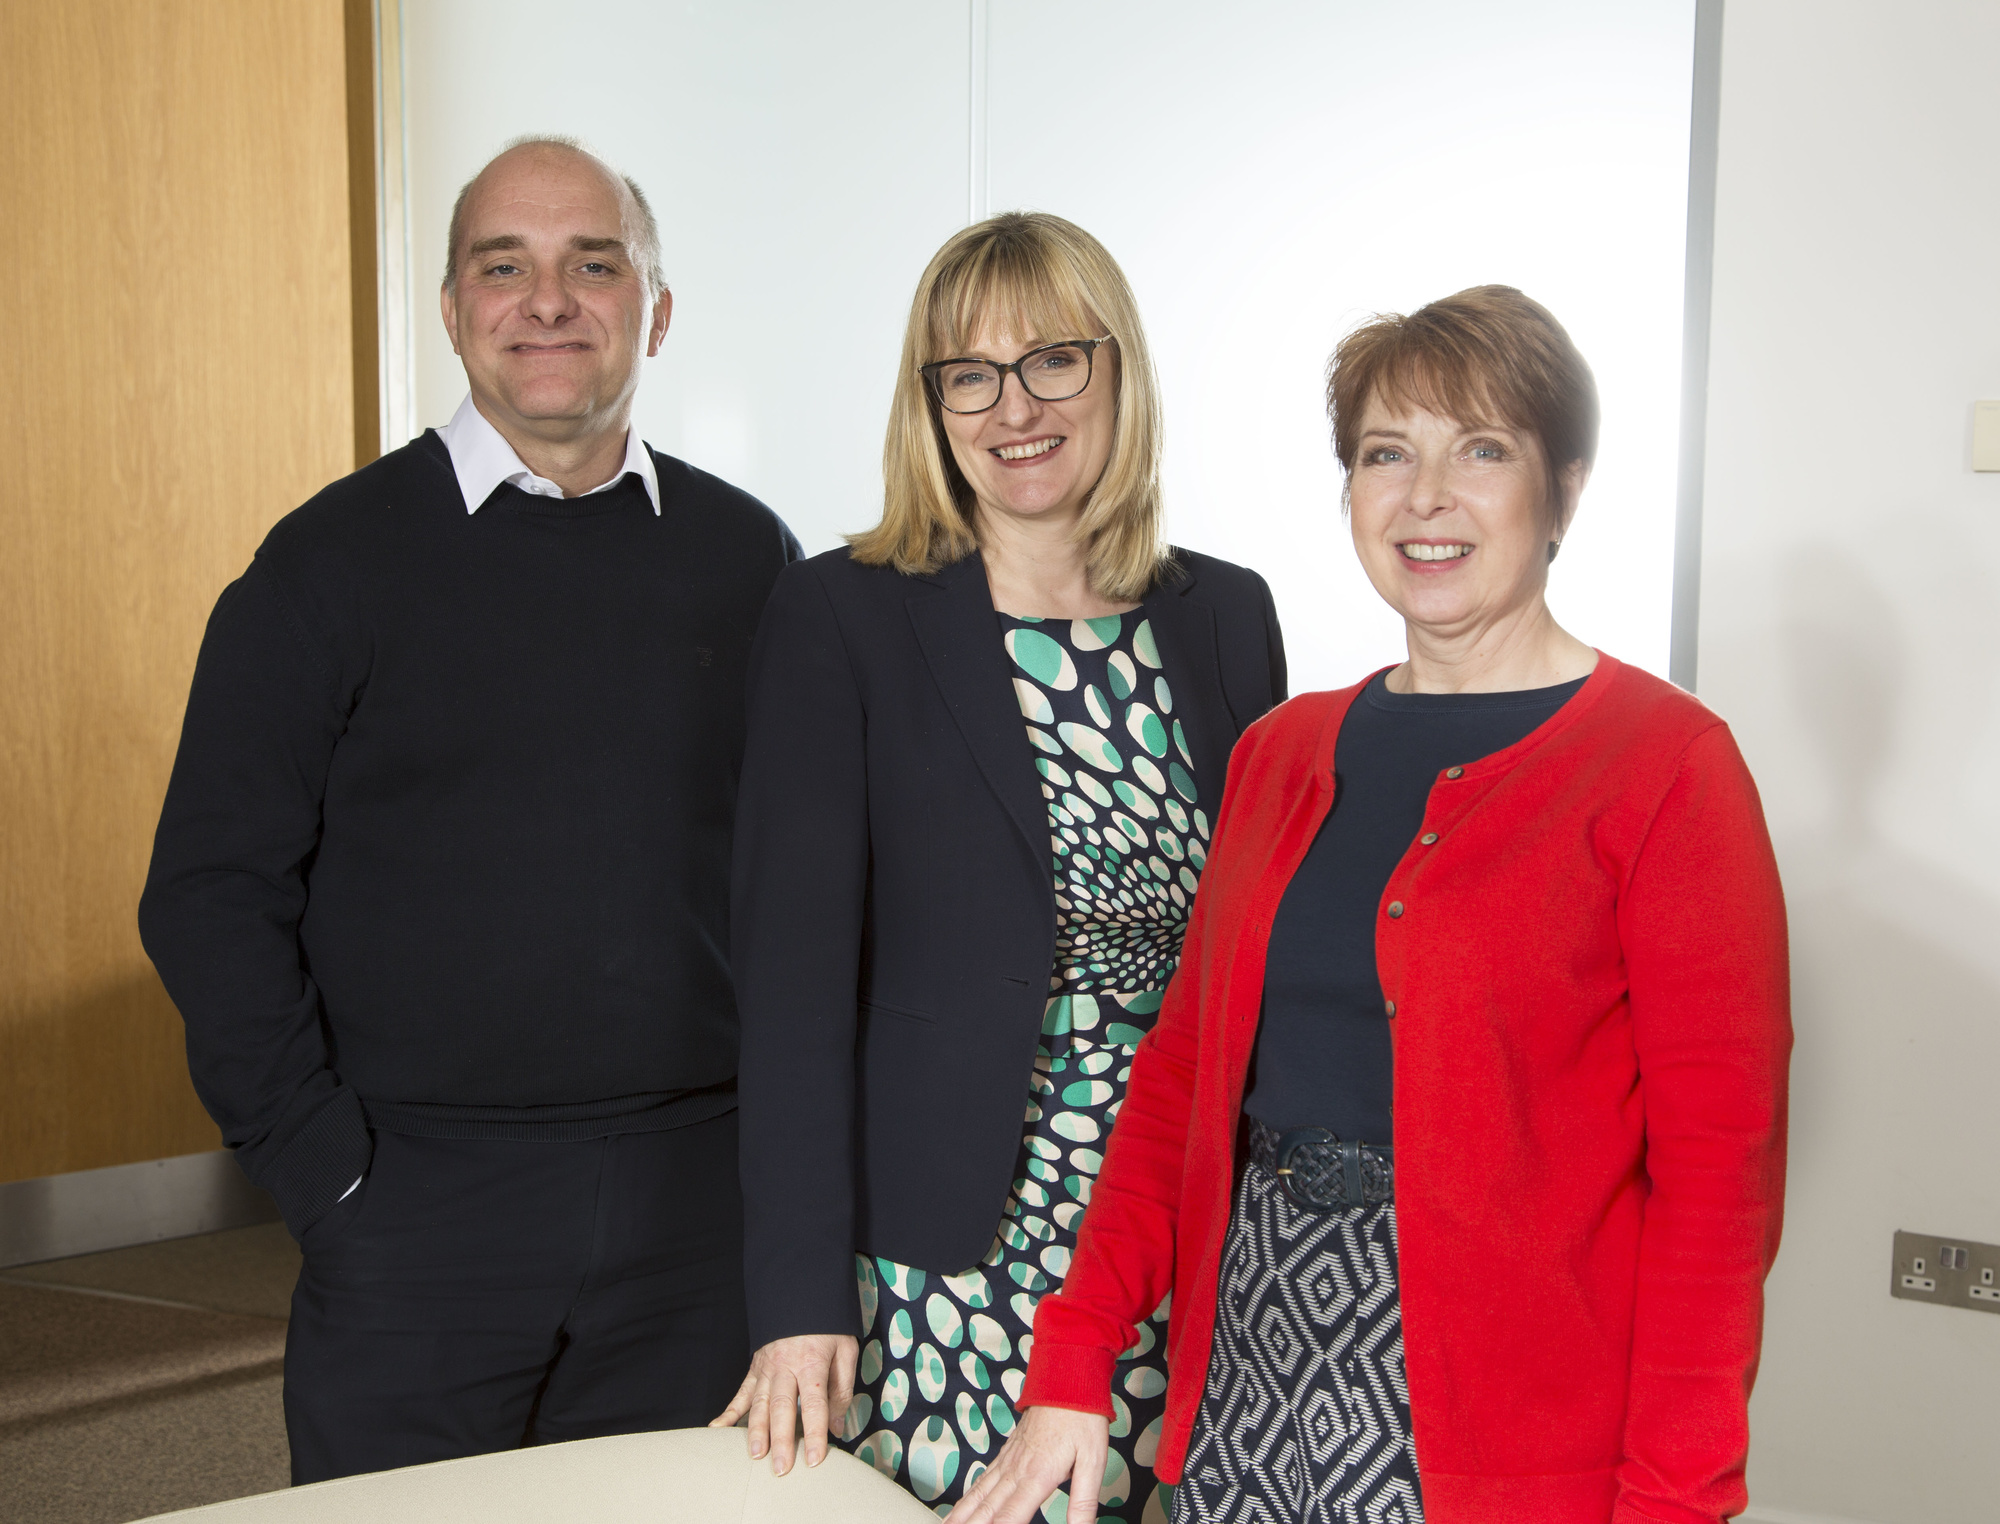 Jason Wainwright, Claire Long and Ann Cummersdale